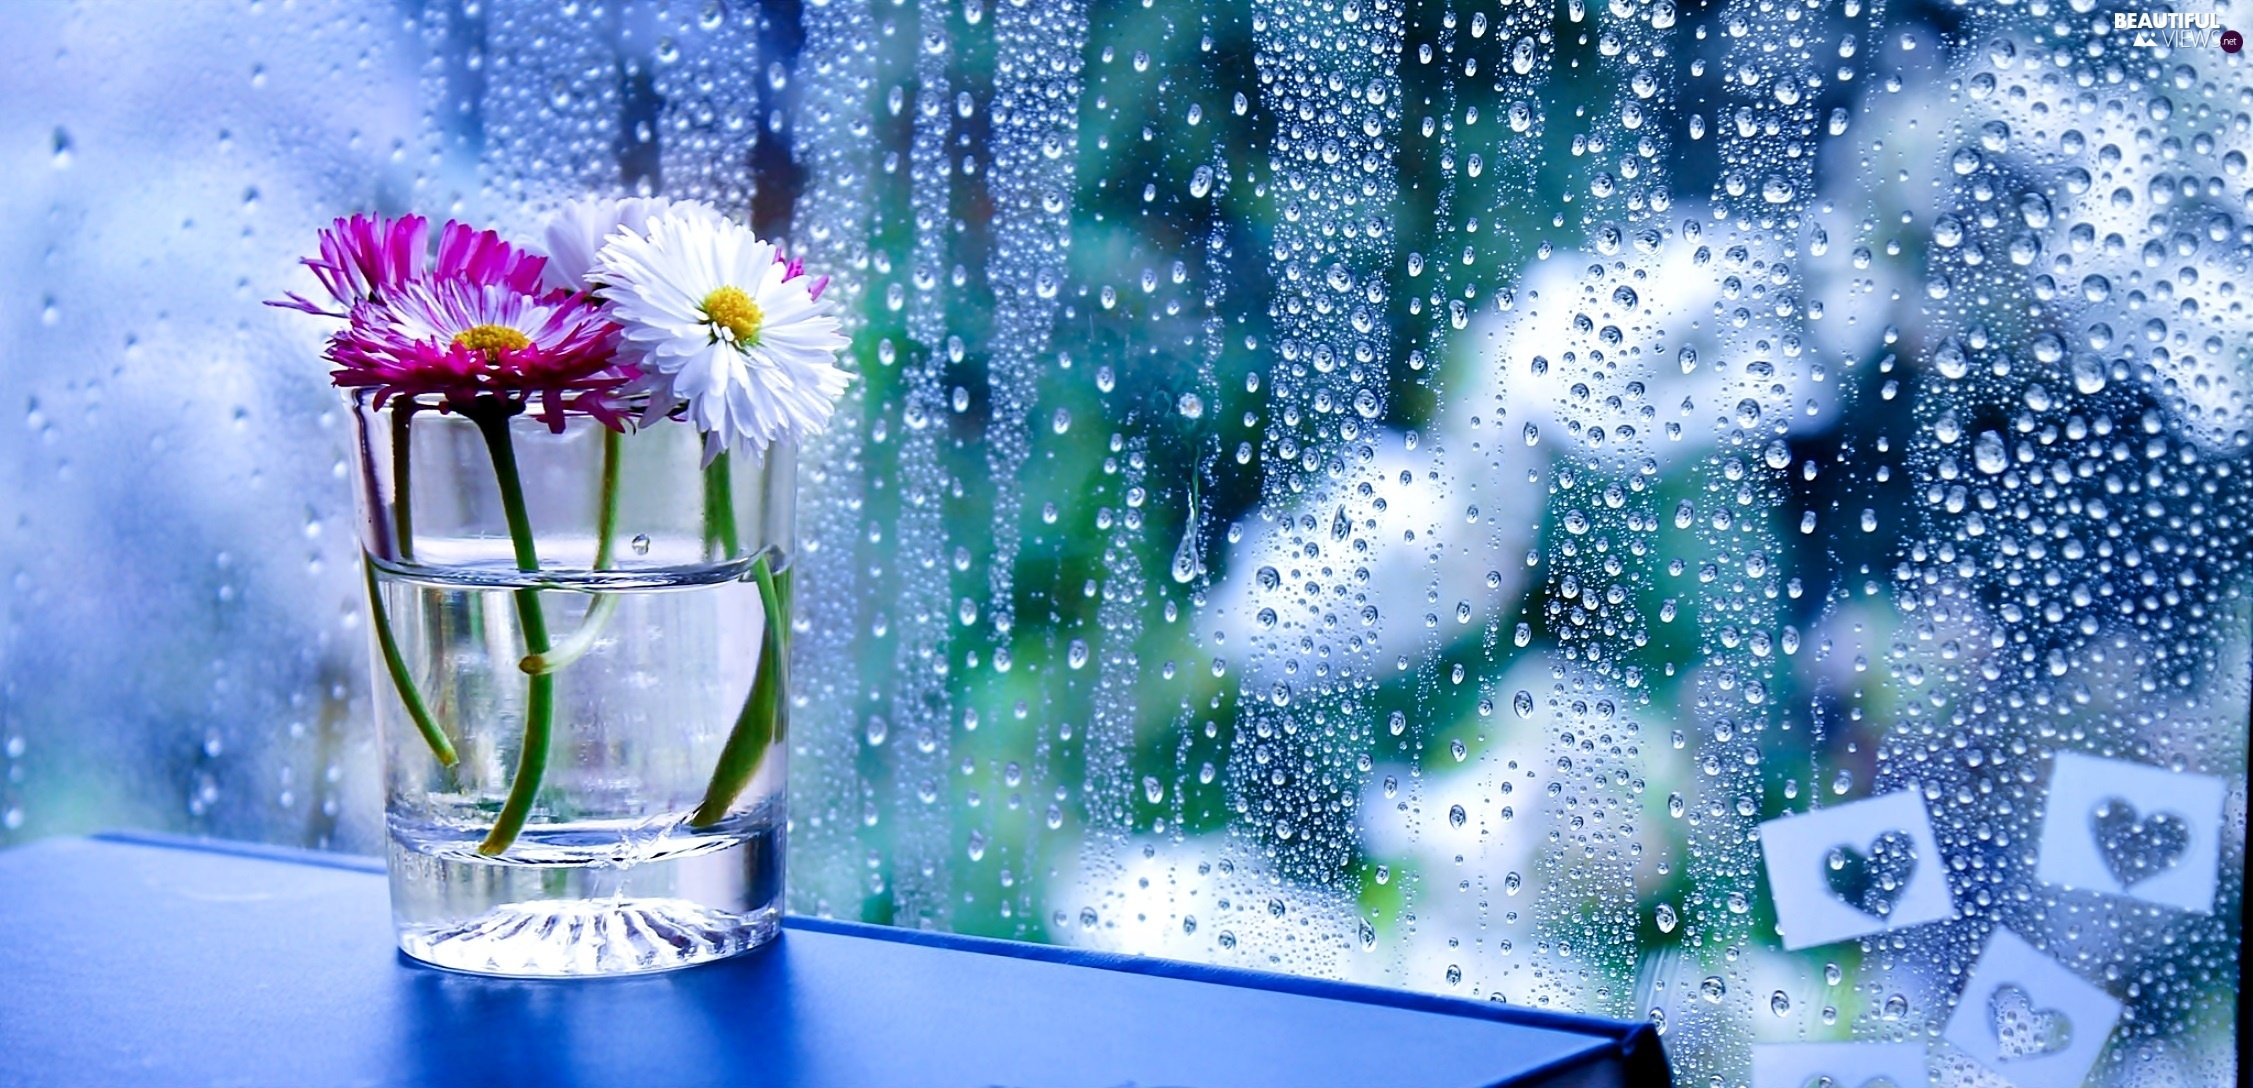 Flowers in the rain wallpaper flowers in the rain wallpaper photo 6 thecheapjerseys Gallery